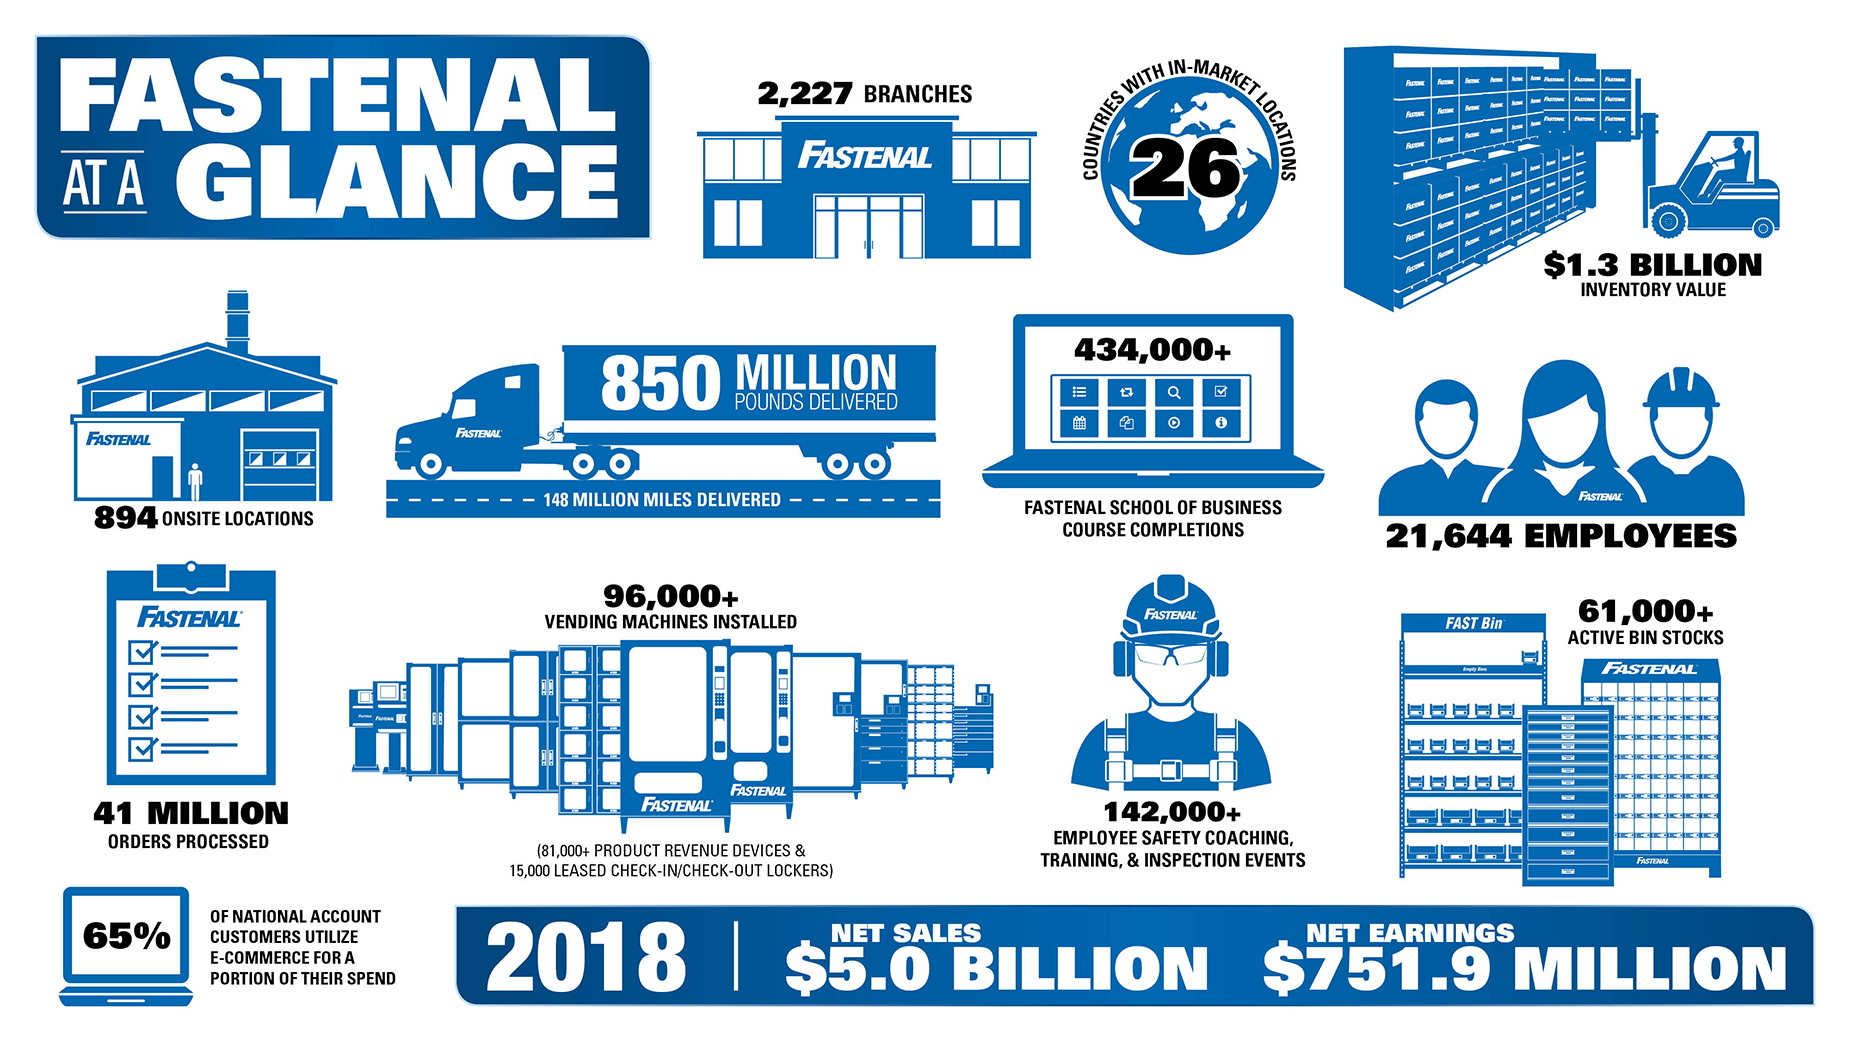 Fastenal At A Glance